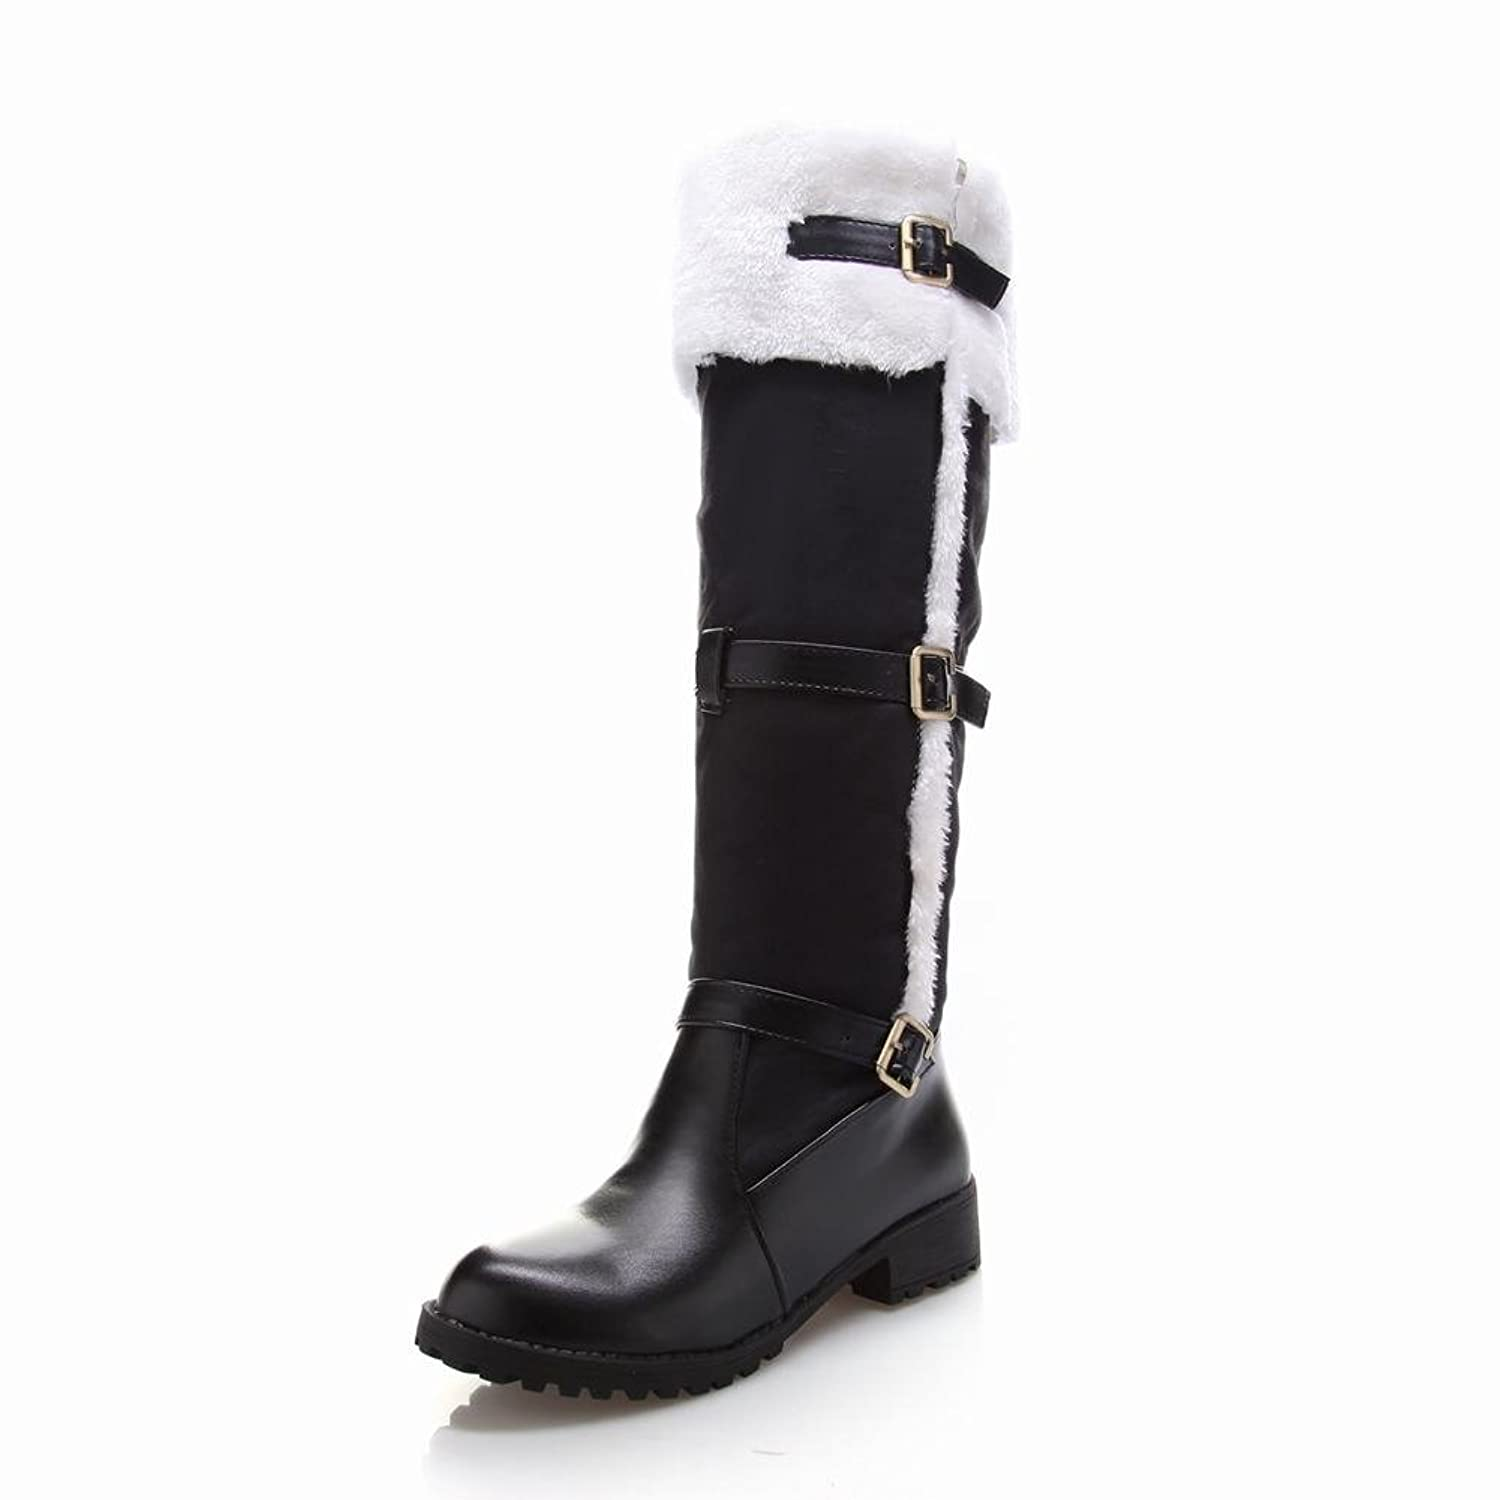 Latasa Women's Fashion Leather&faux-fur Knee-high Snow Boots, Buckles Decoration